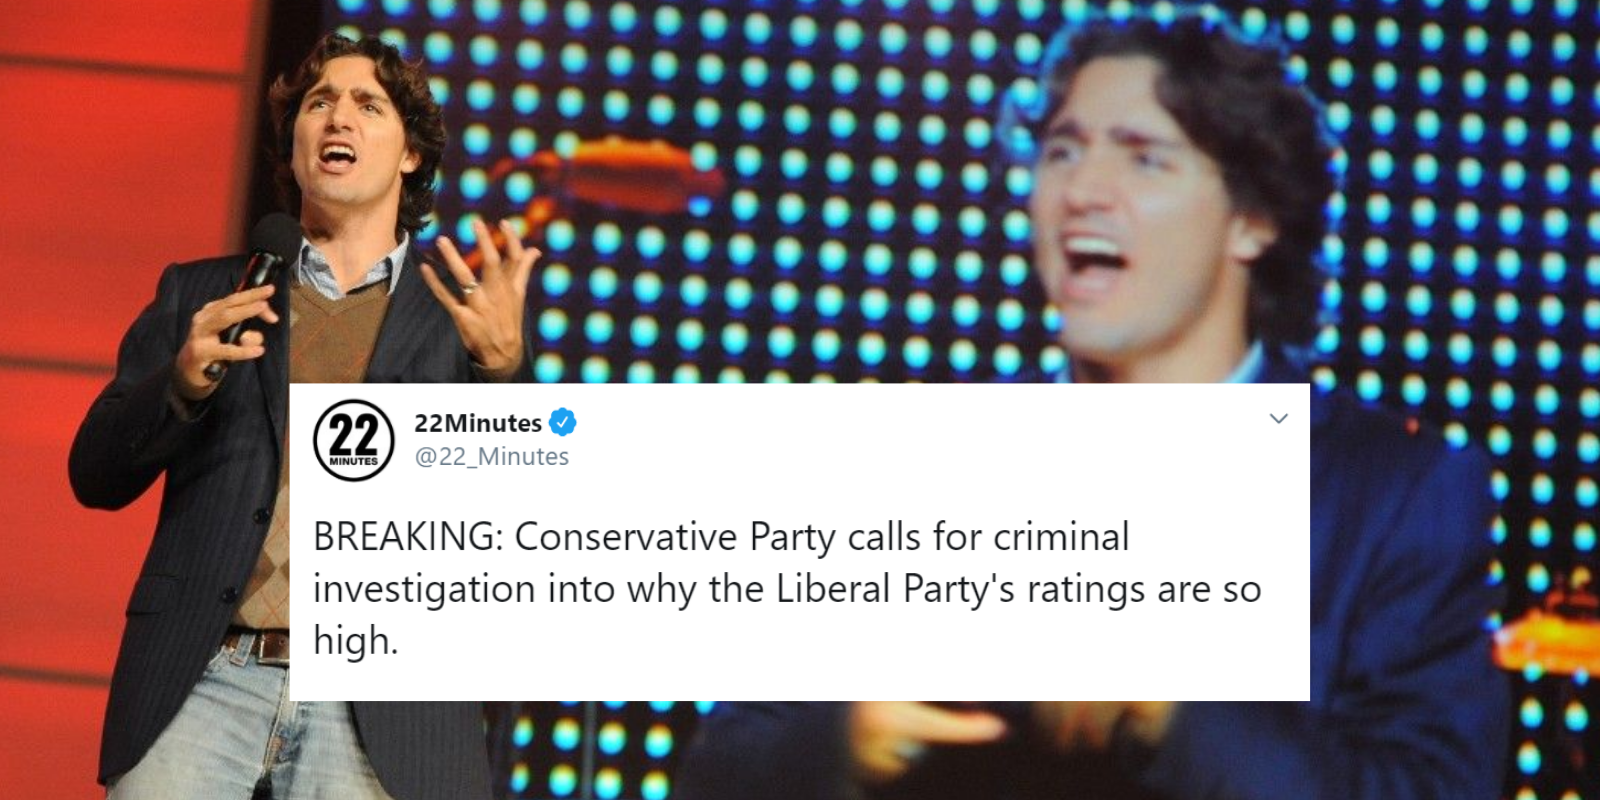 CBC comedy account's response to Trudeau's WE Charity scandal is to ... dunk on Conservative Party?